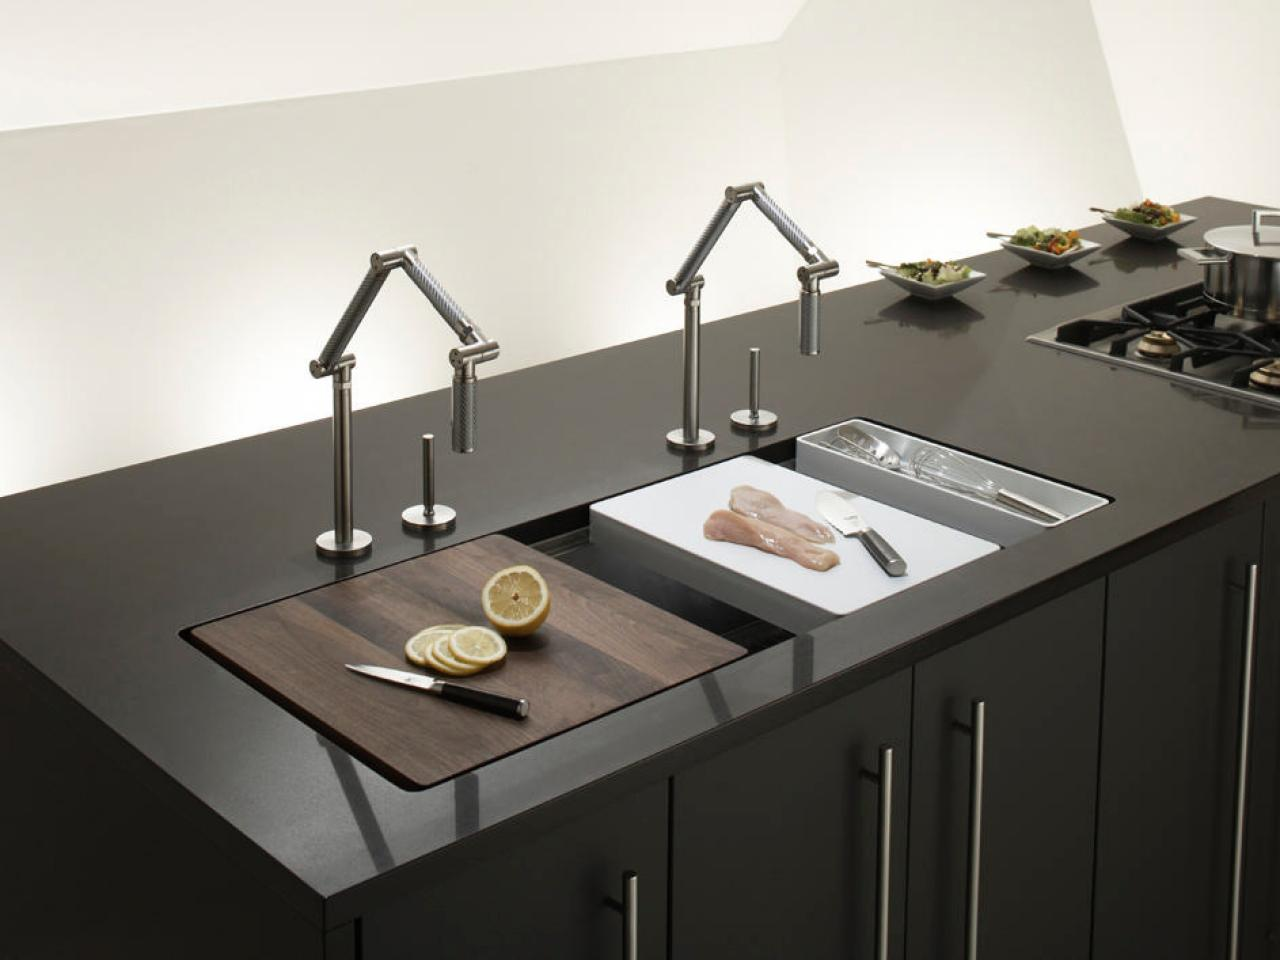 Designer Toilets And Sinks Trough Sinks For Efficient Bathroom And Kitchen Ideas